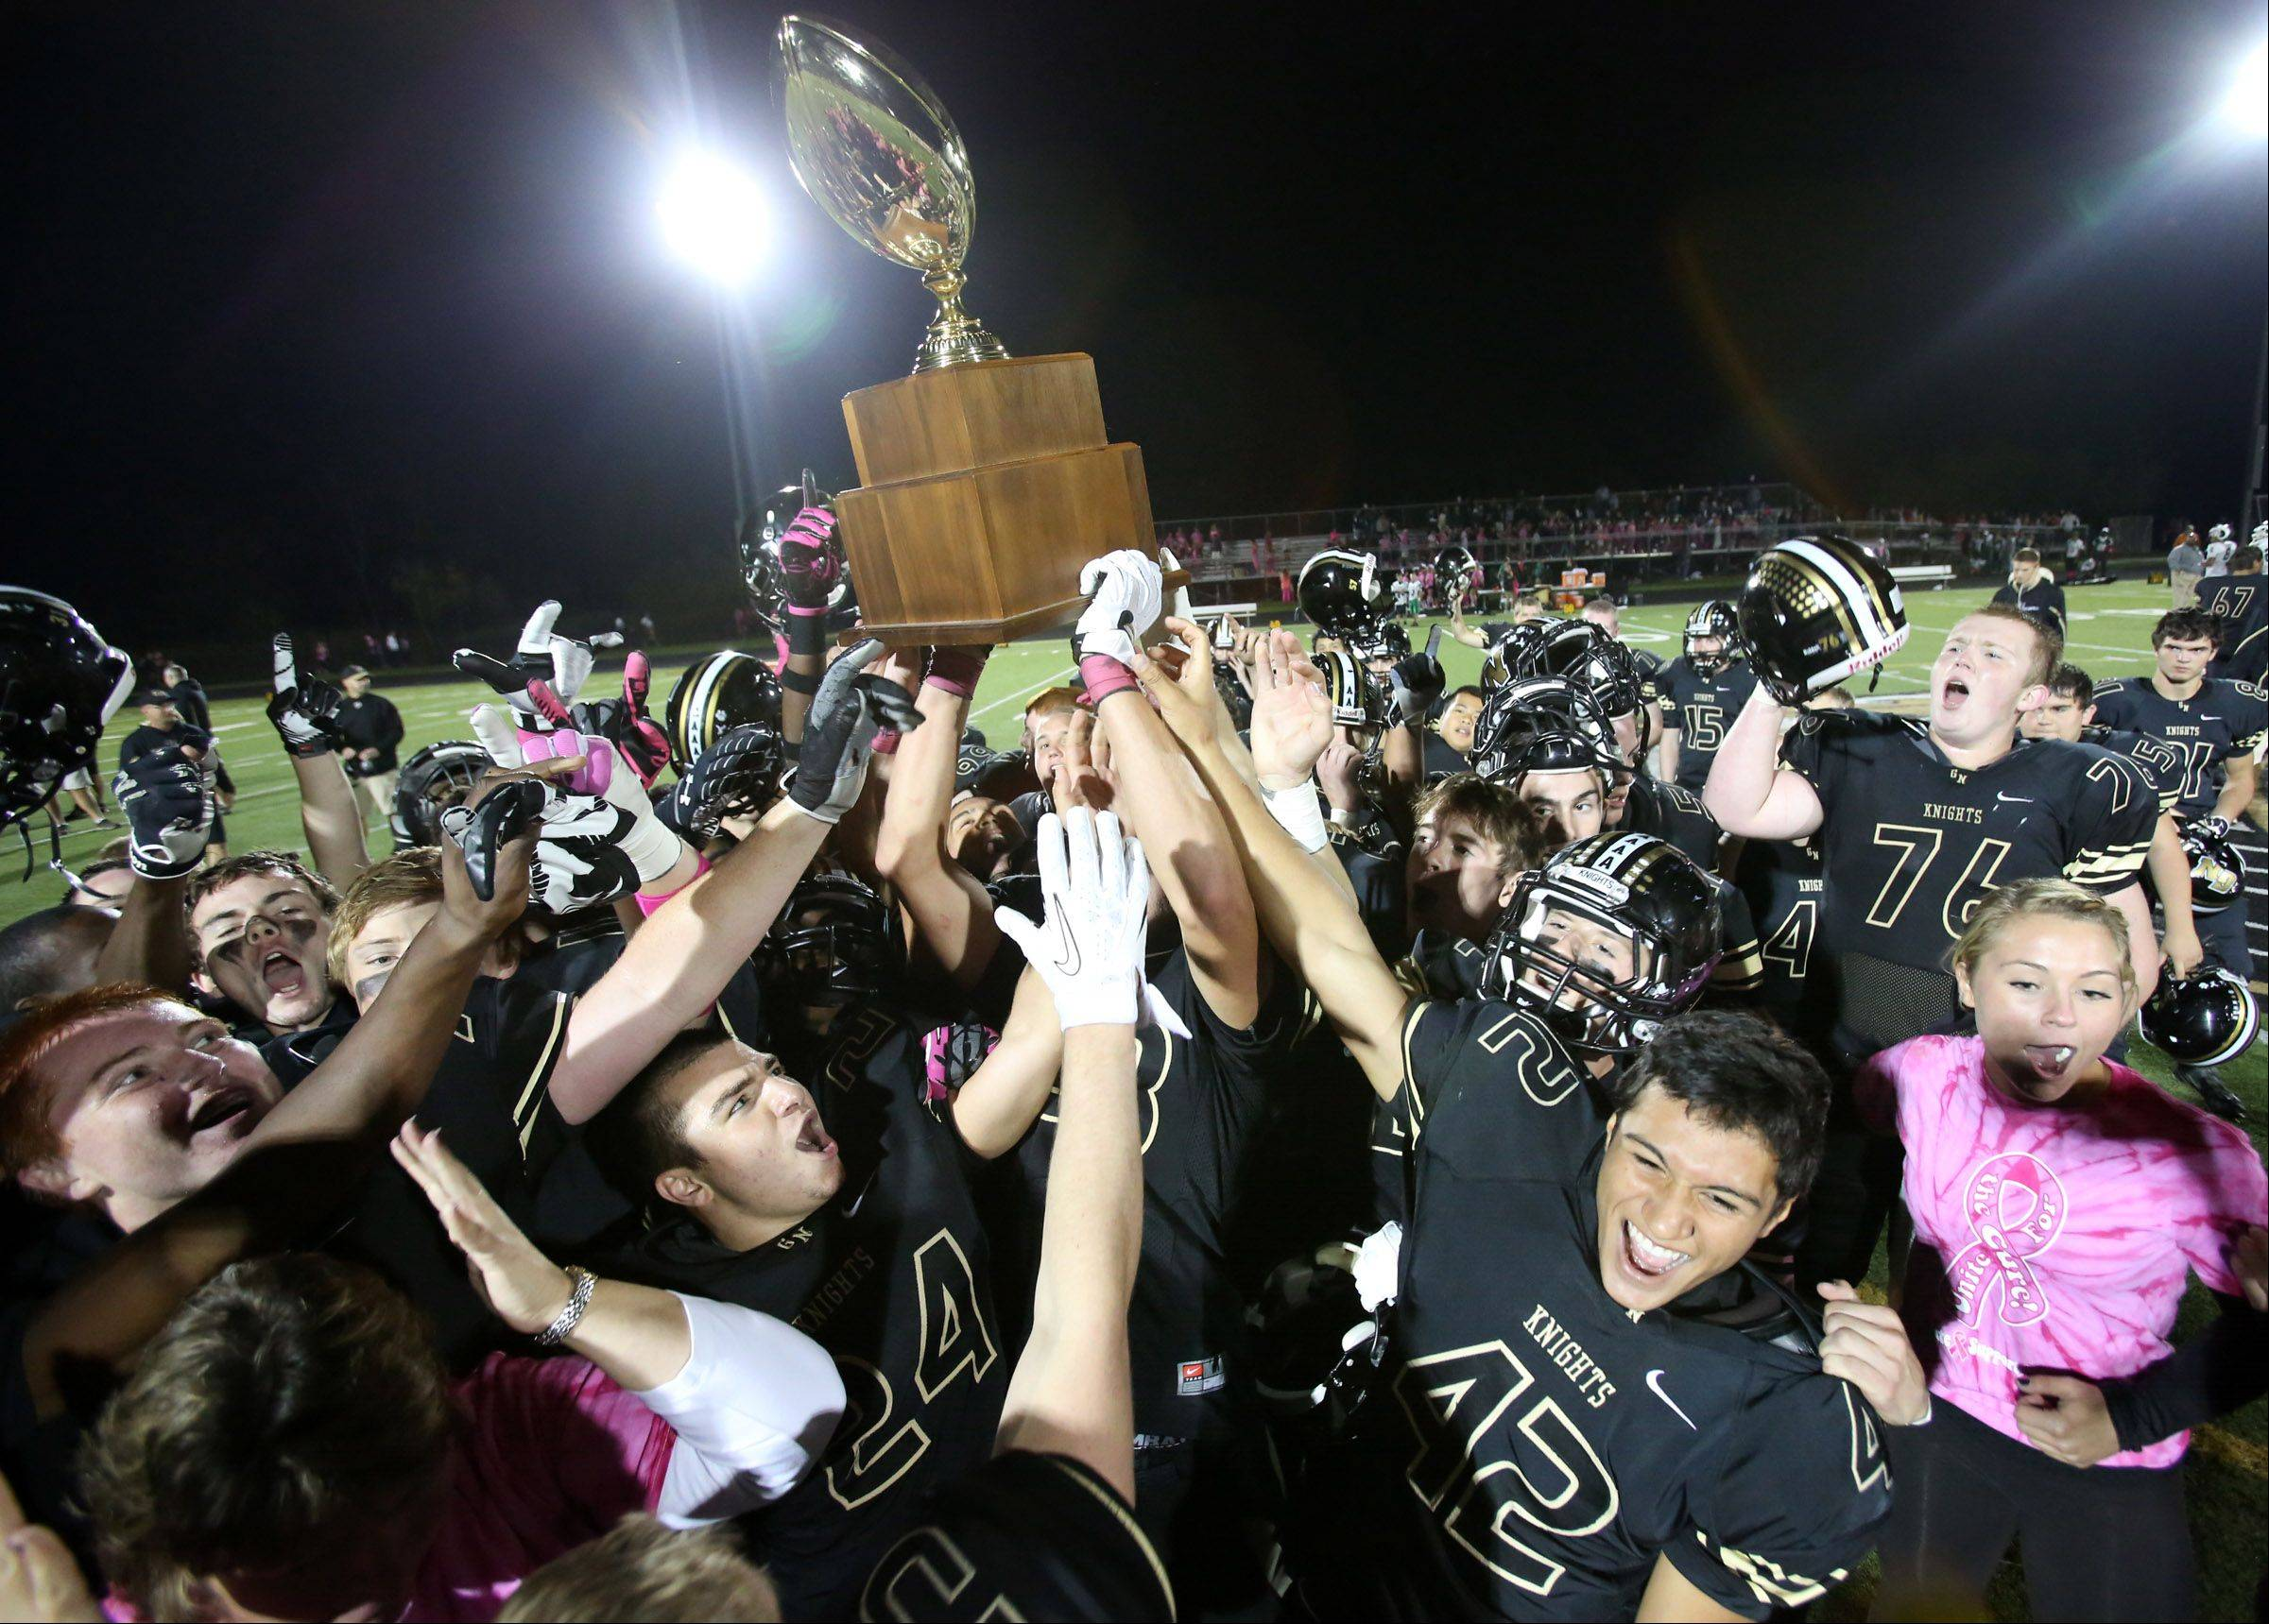 Grayslake North won 24-21 against Grayslake Central retaining the Grayslake Community High School District 127 �Crosstown Classic� trophy .